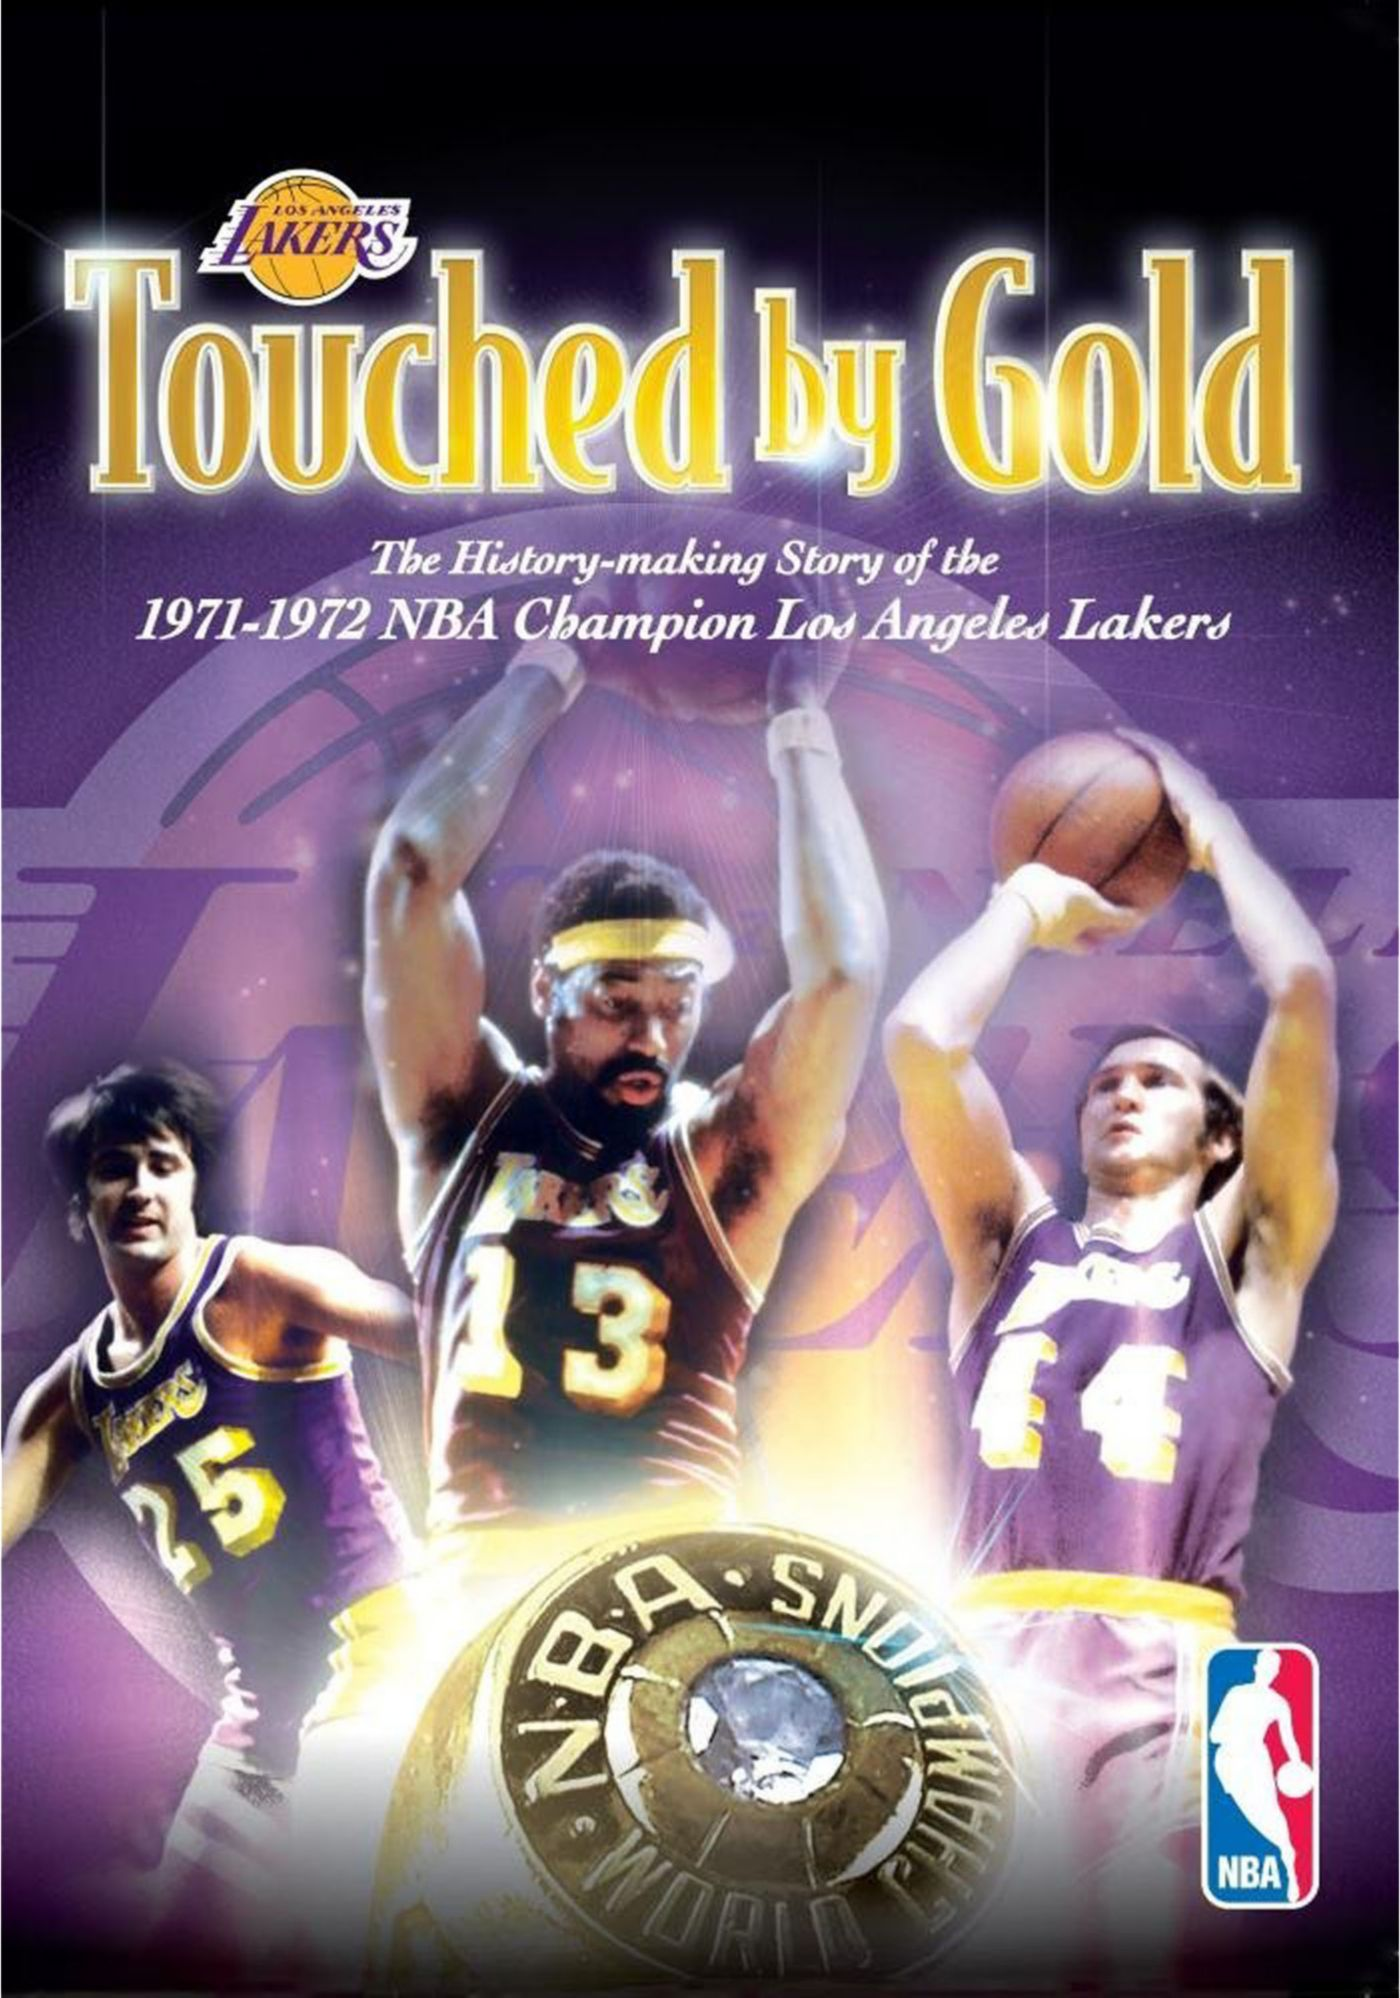 Touched by Gold: the History-making Story of the 1971-1972 NBA Champion Los Angeles Lakers DVD